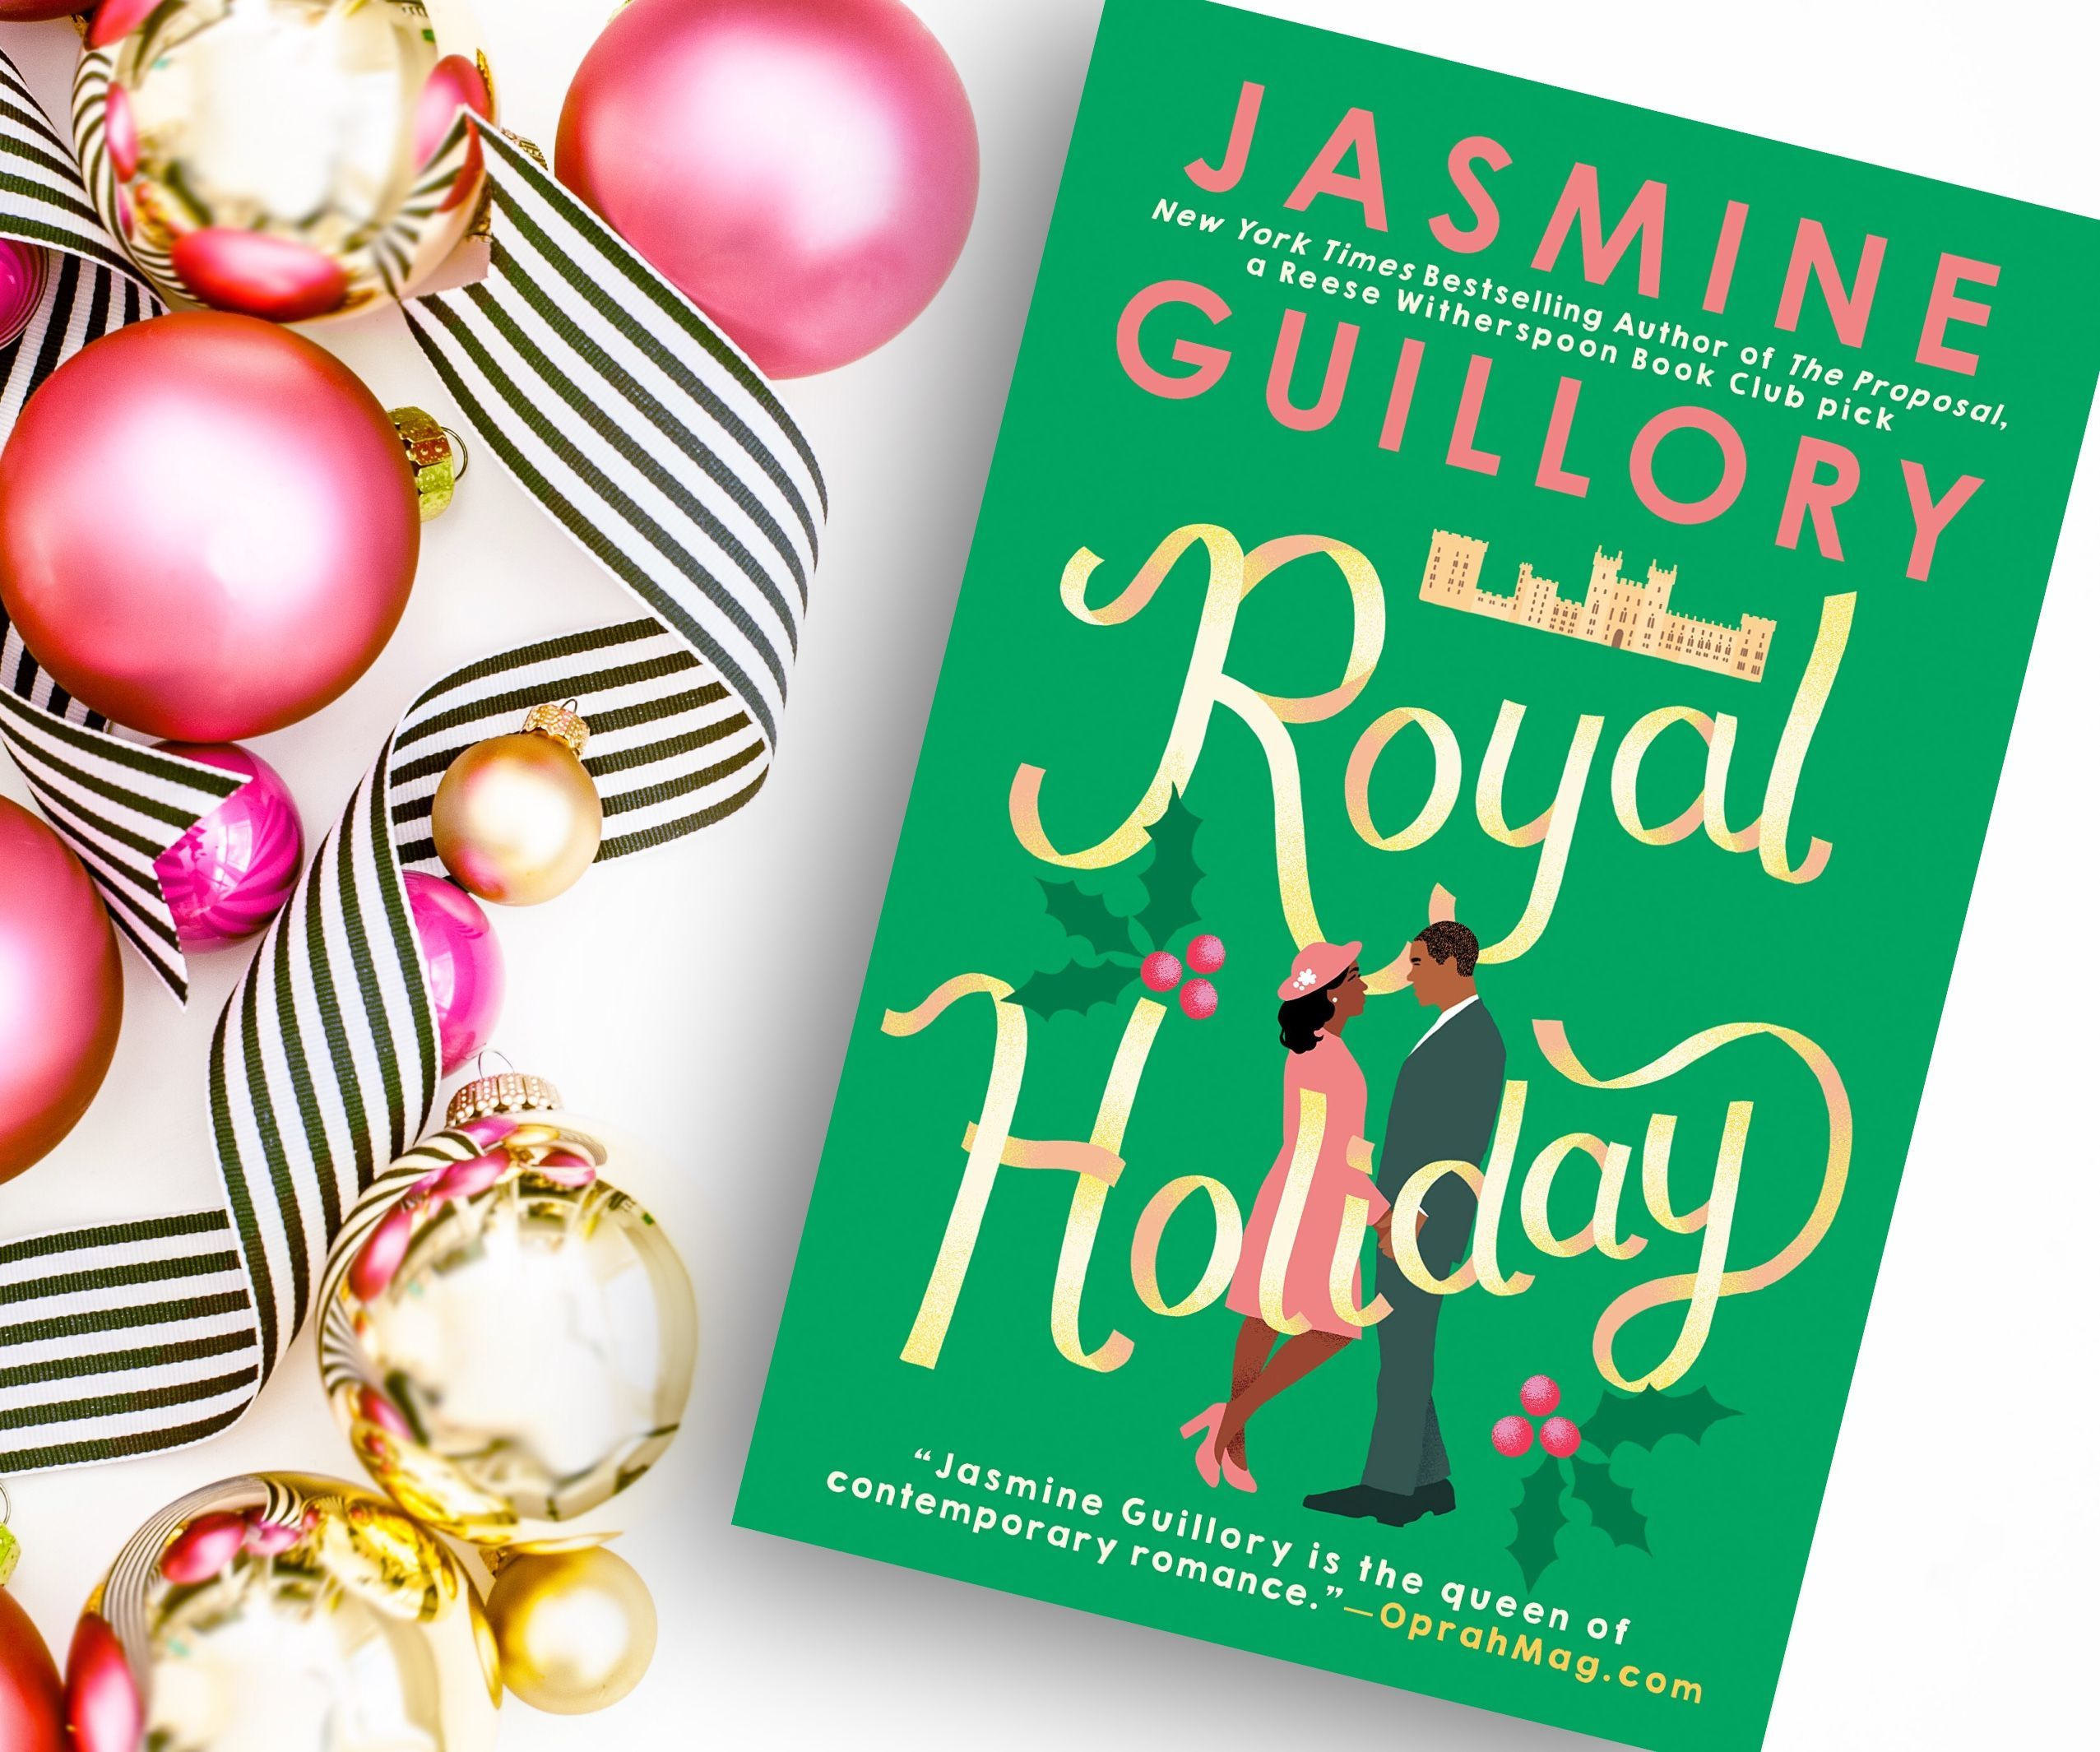 Royal Holiday is the fourth book in the series by Jasmine